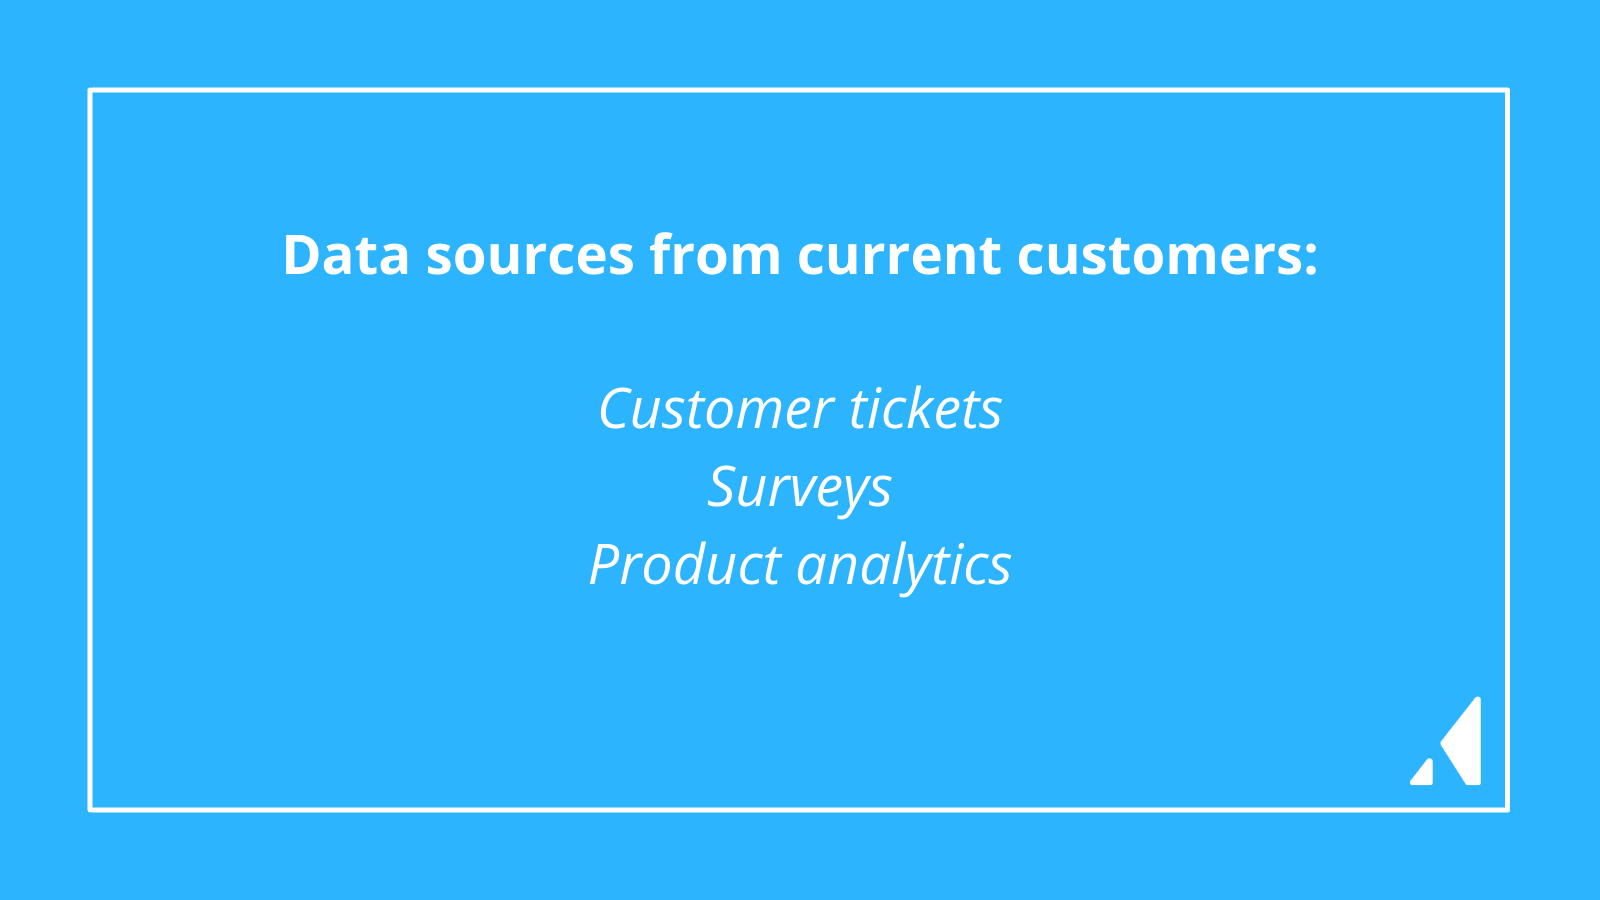 Data sources from current customers